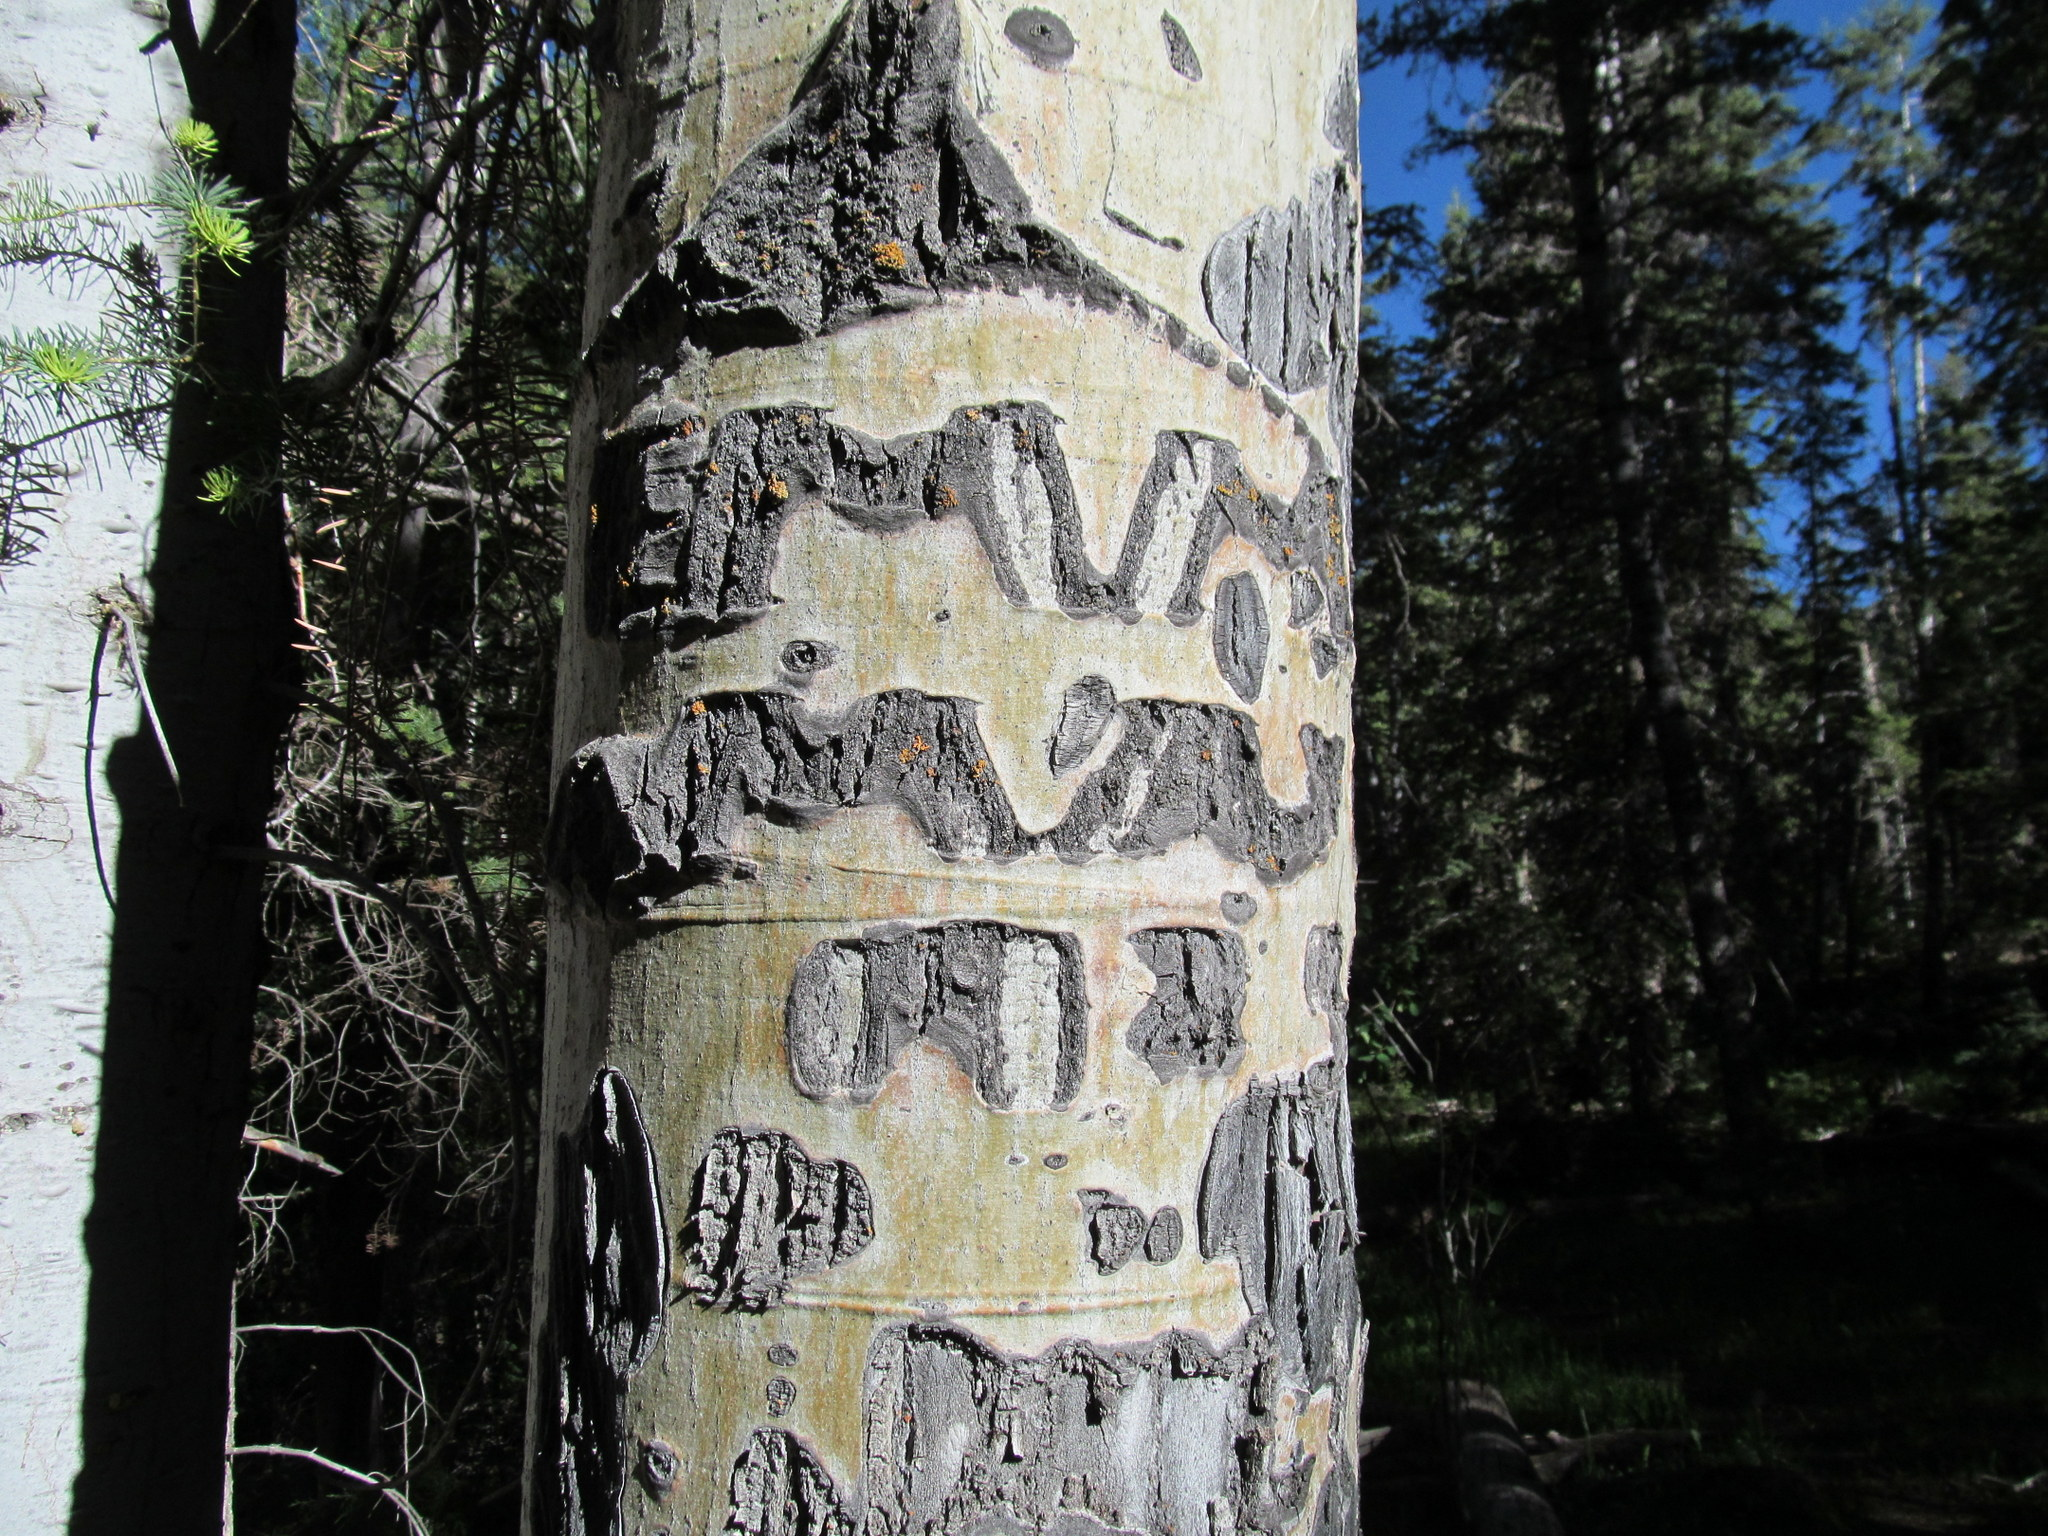 Photo: 1925 aspen carving